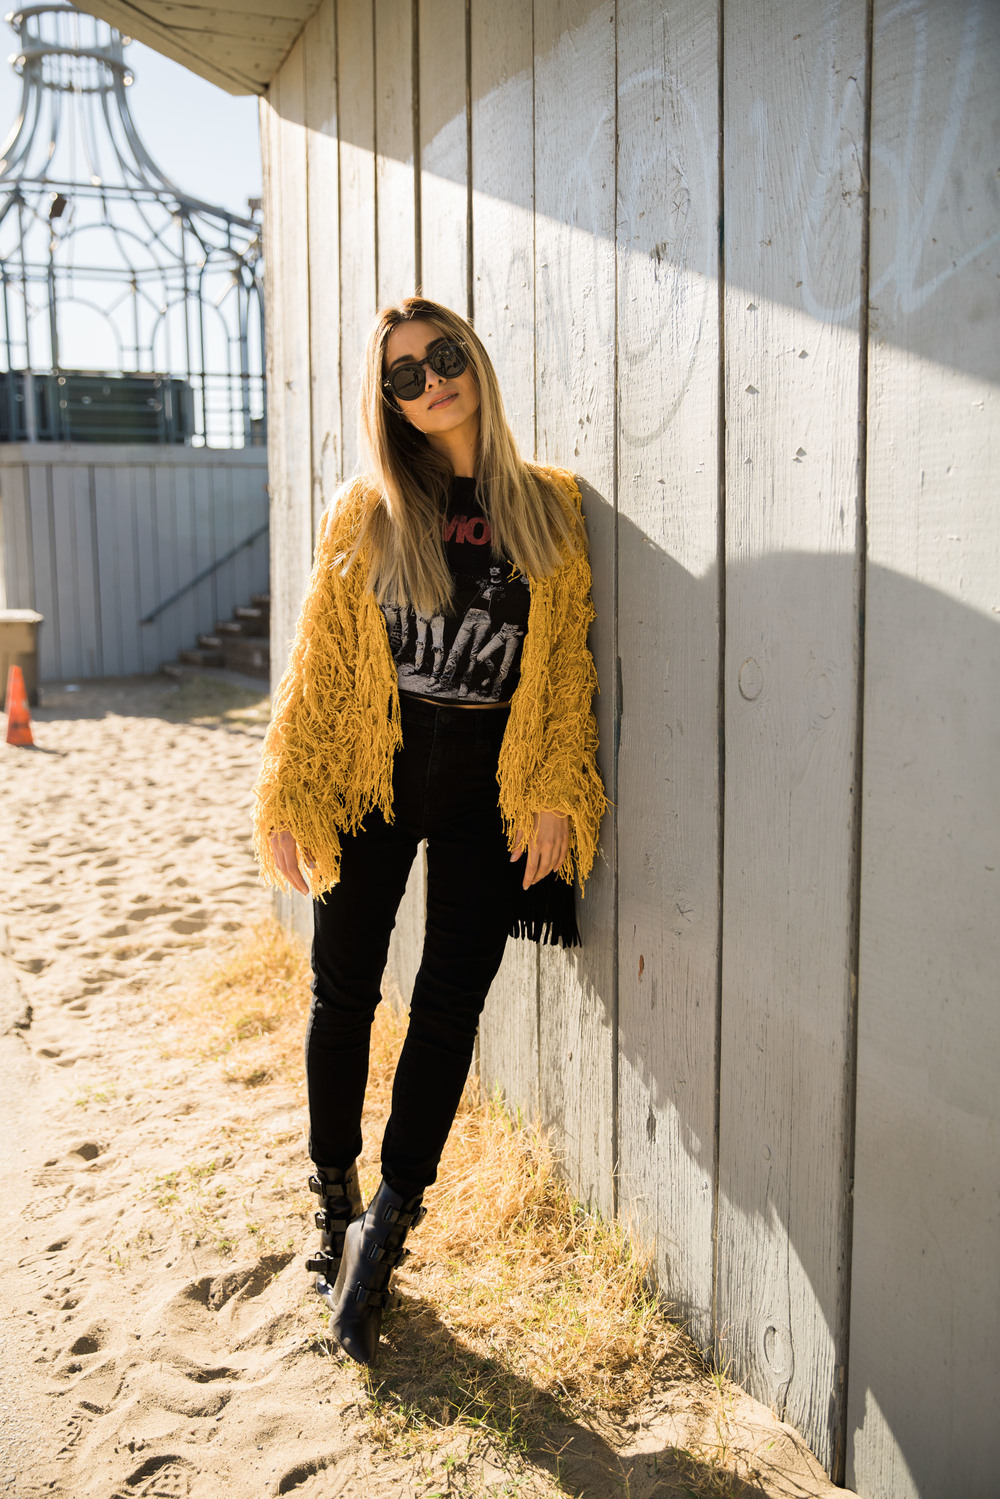 foray collective_savvy javvy_mate the label_fashion blogger_la_santa monica_fuzzy jacket_ramones_la style_street style_benjamin smith_roguefoto_ben smith photographer_lovers and drifters jacket_